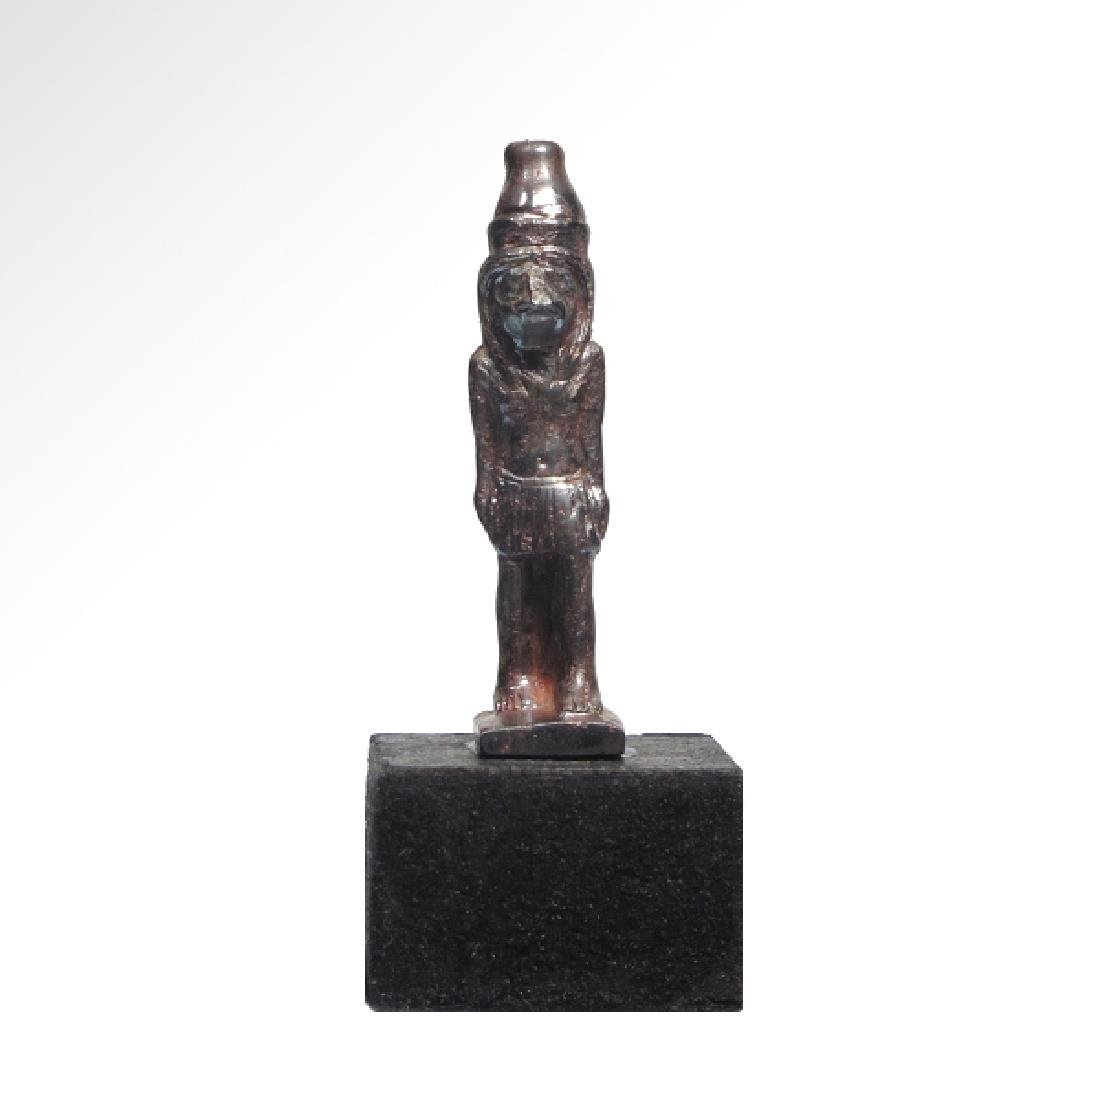 Egyptian Hematite Amulet of the Standing Falcon-Headed